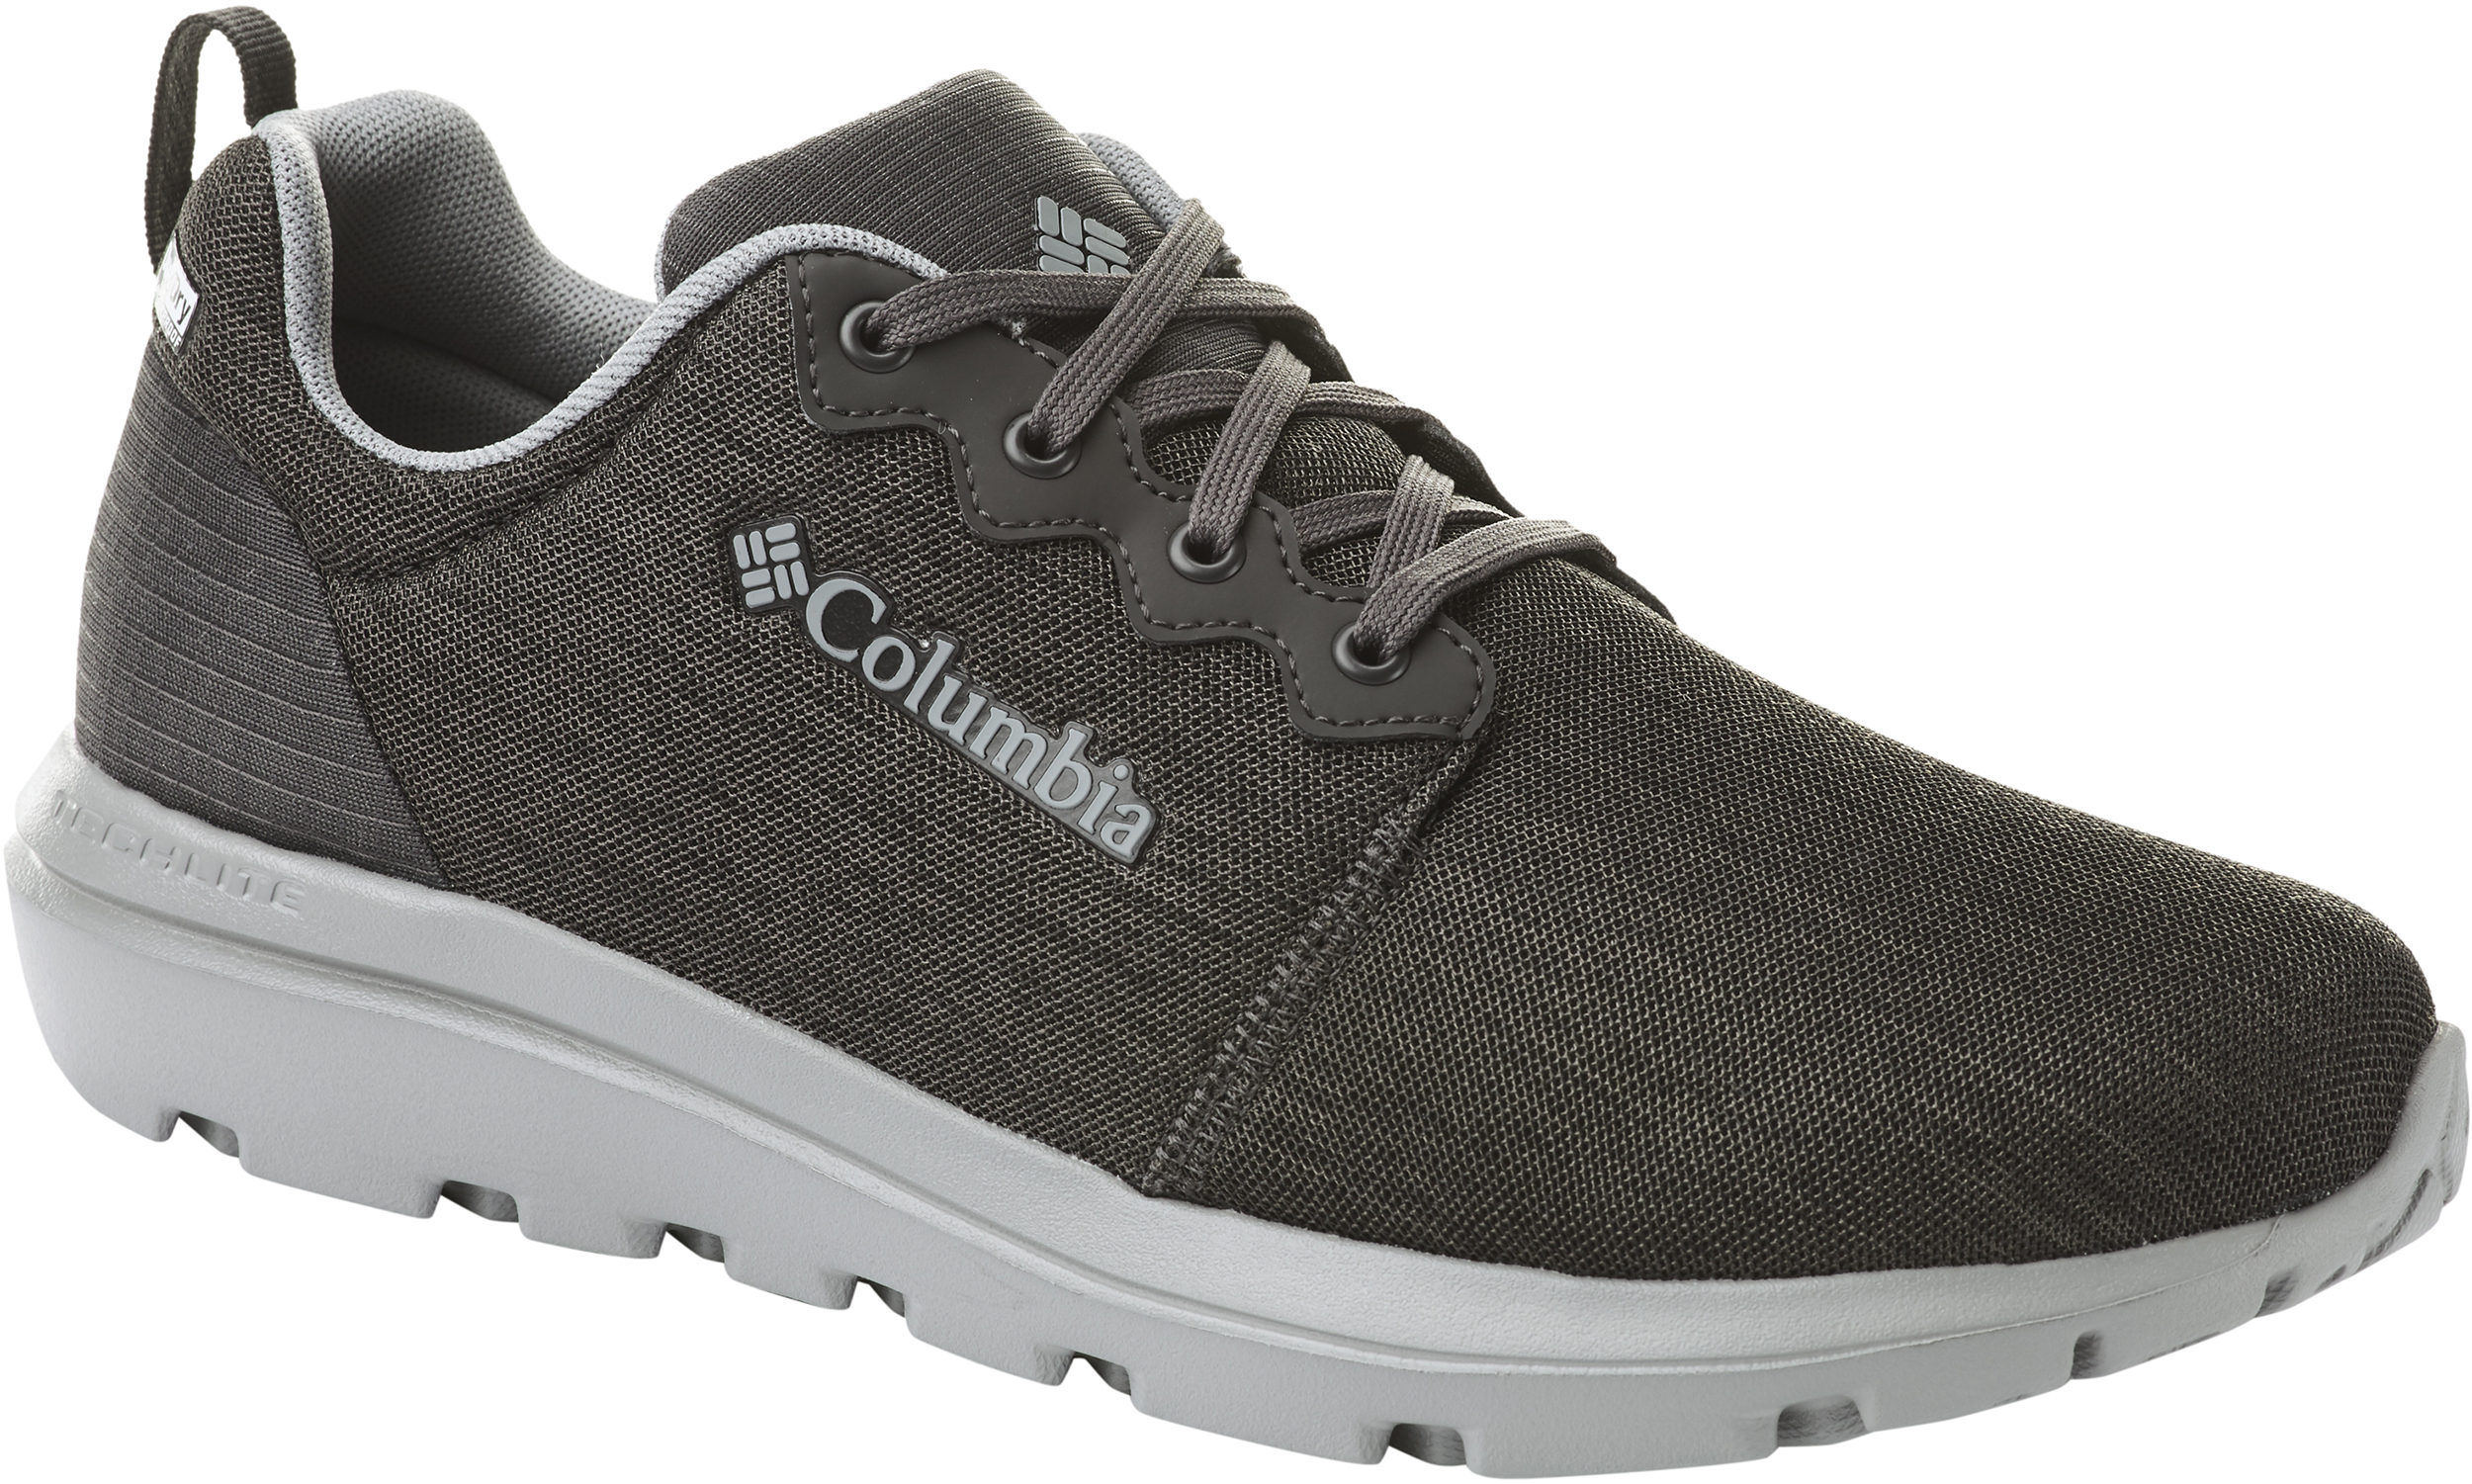 Columbia Backpedal Outdry Waterproof